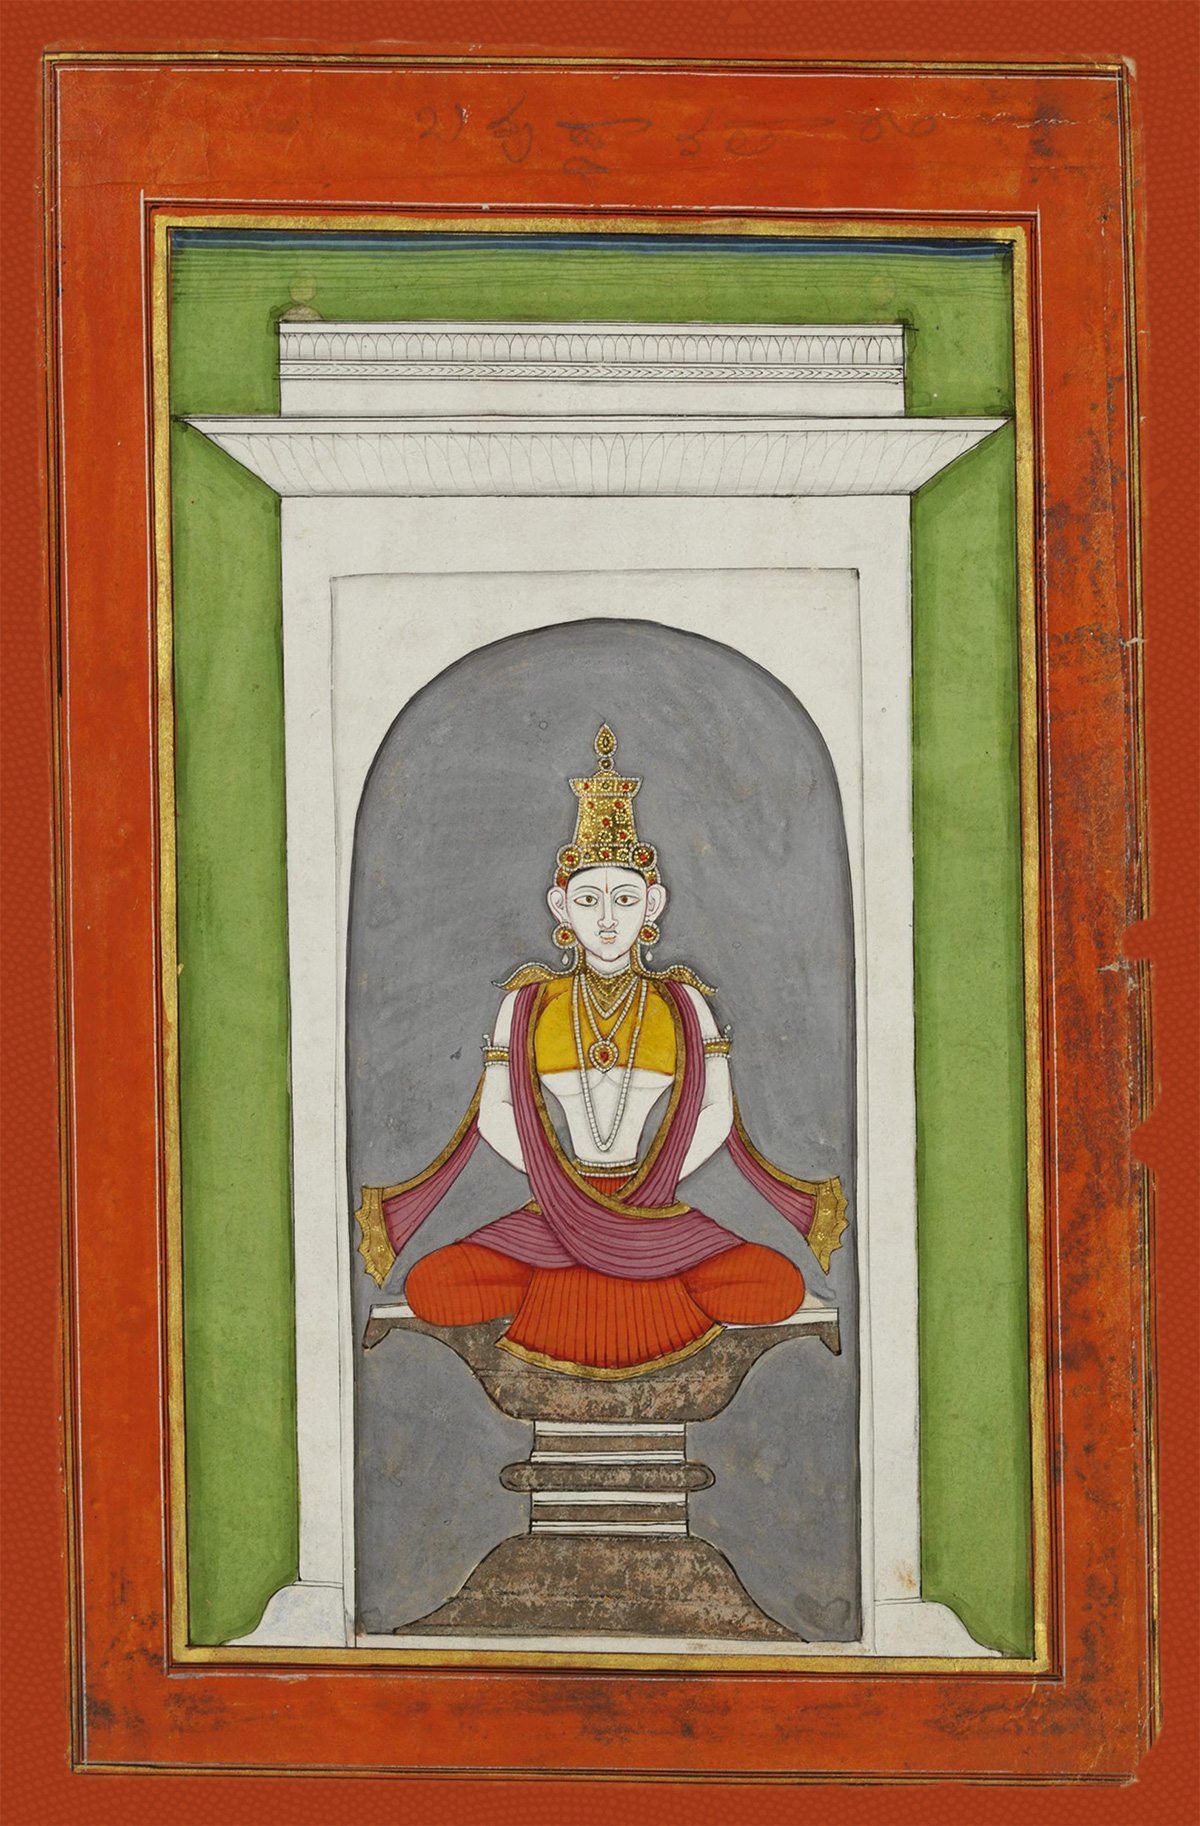 A drawing of Buddha meditating. There is a white temple around it, with a green border and red border outside of that.